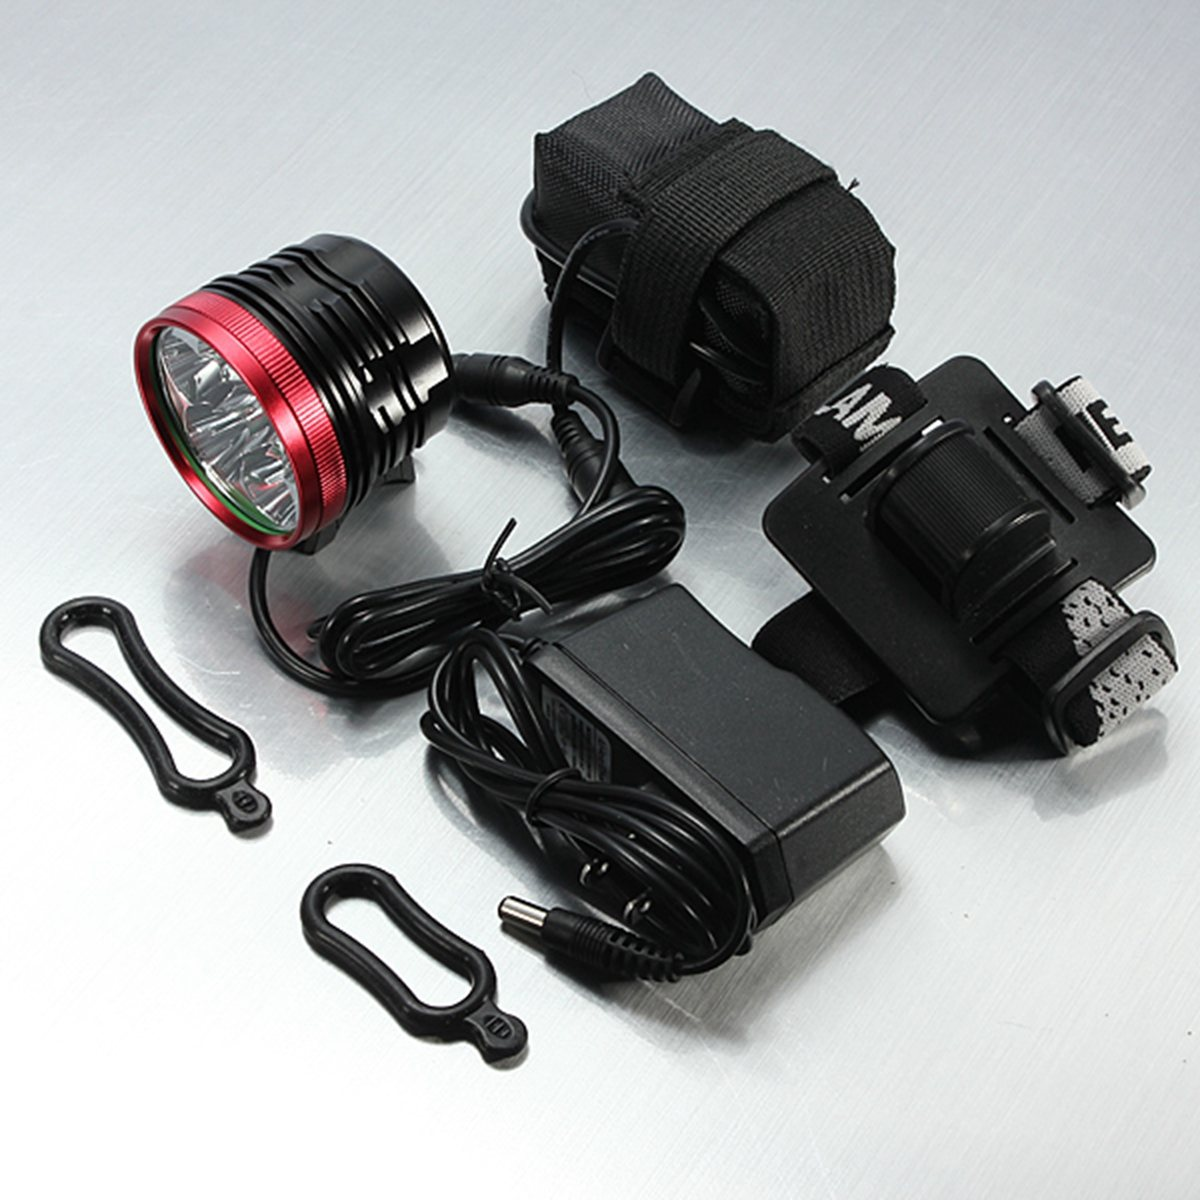 цена на Waterproof 9000LM 3 modes 6x for XM-L2 T6 led Bike Bicycle Front Light Headlight Headlamp + 18650 Battery Pack +Charger